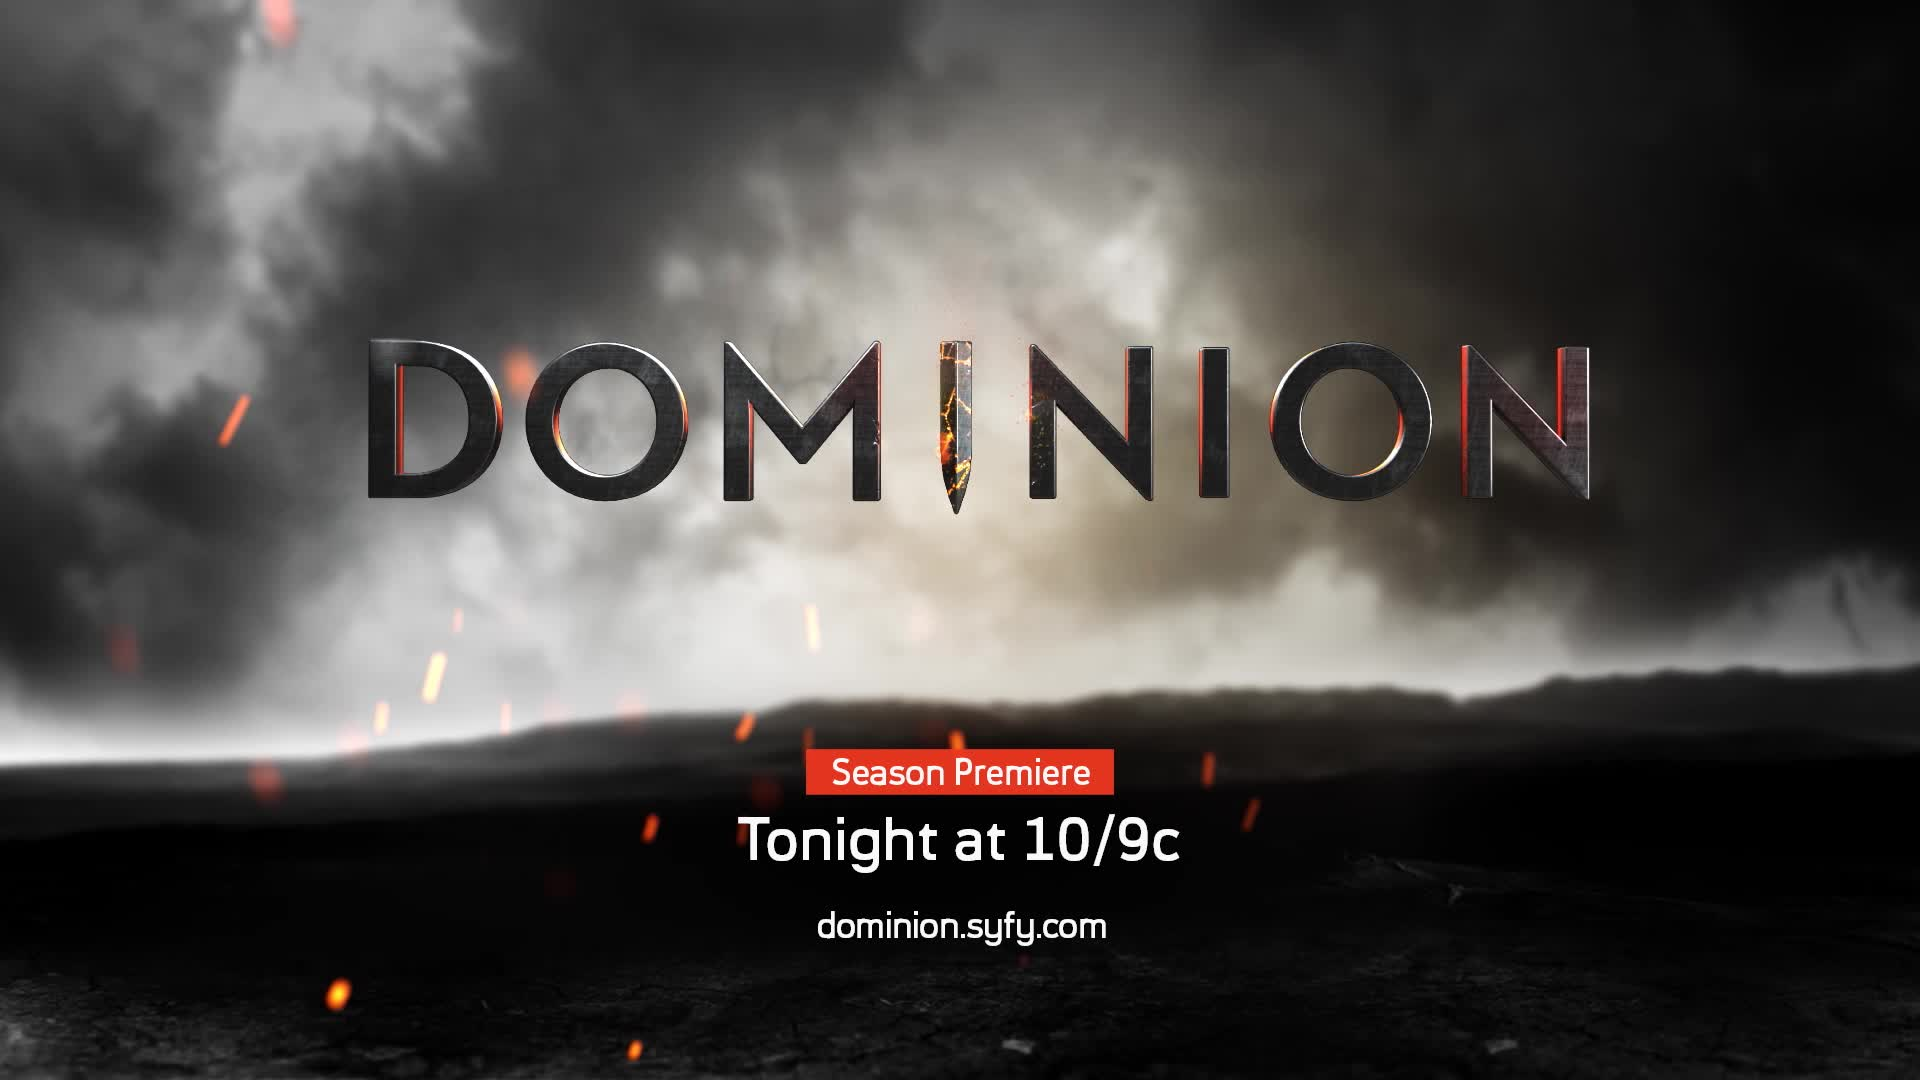 Dominion full movie download in italian